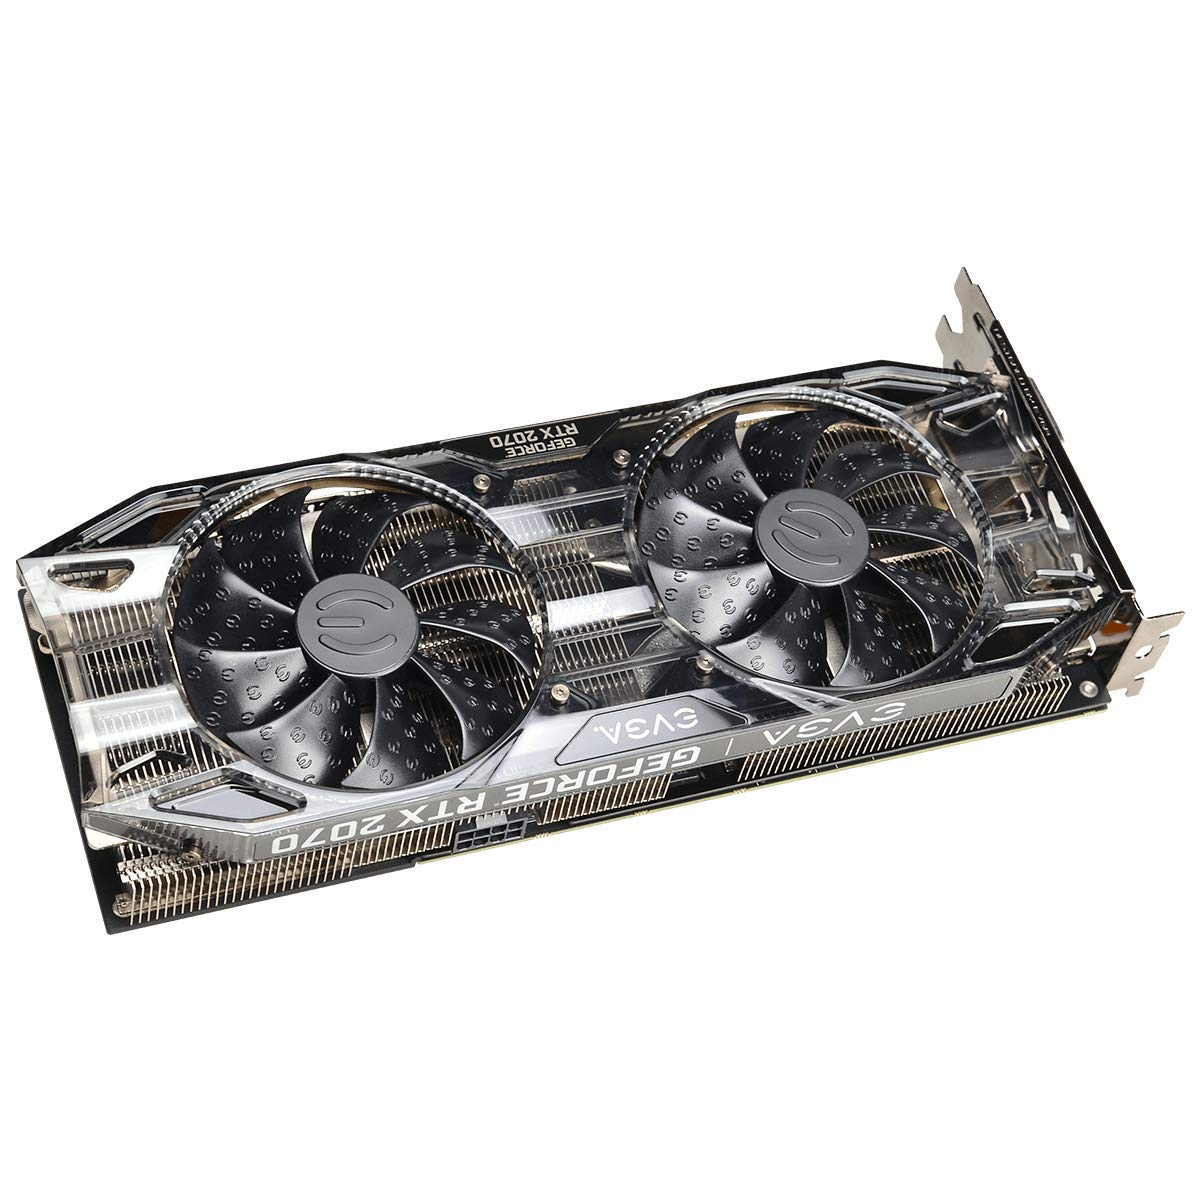 EVGA GeForce RTX 2070 Black Gaming,8GB GDDR6, Dual HDB Fans Graphics Card 08G-P4-1071-KR by EVGA (Image #6)